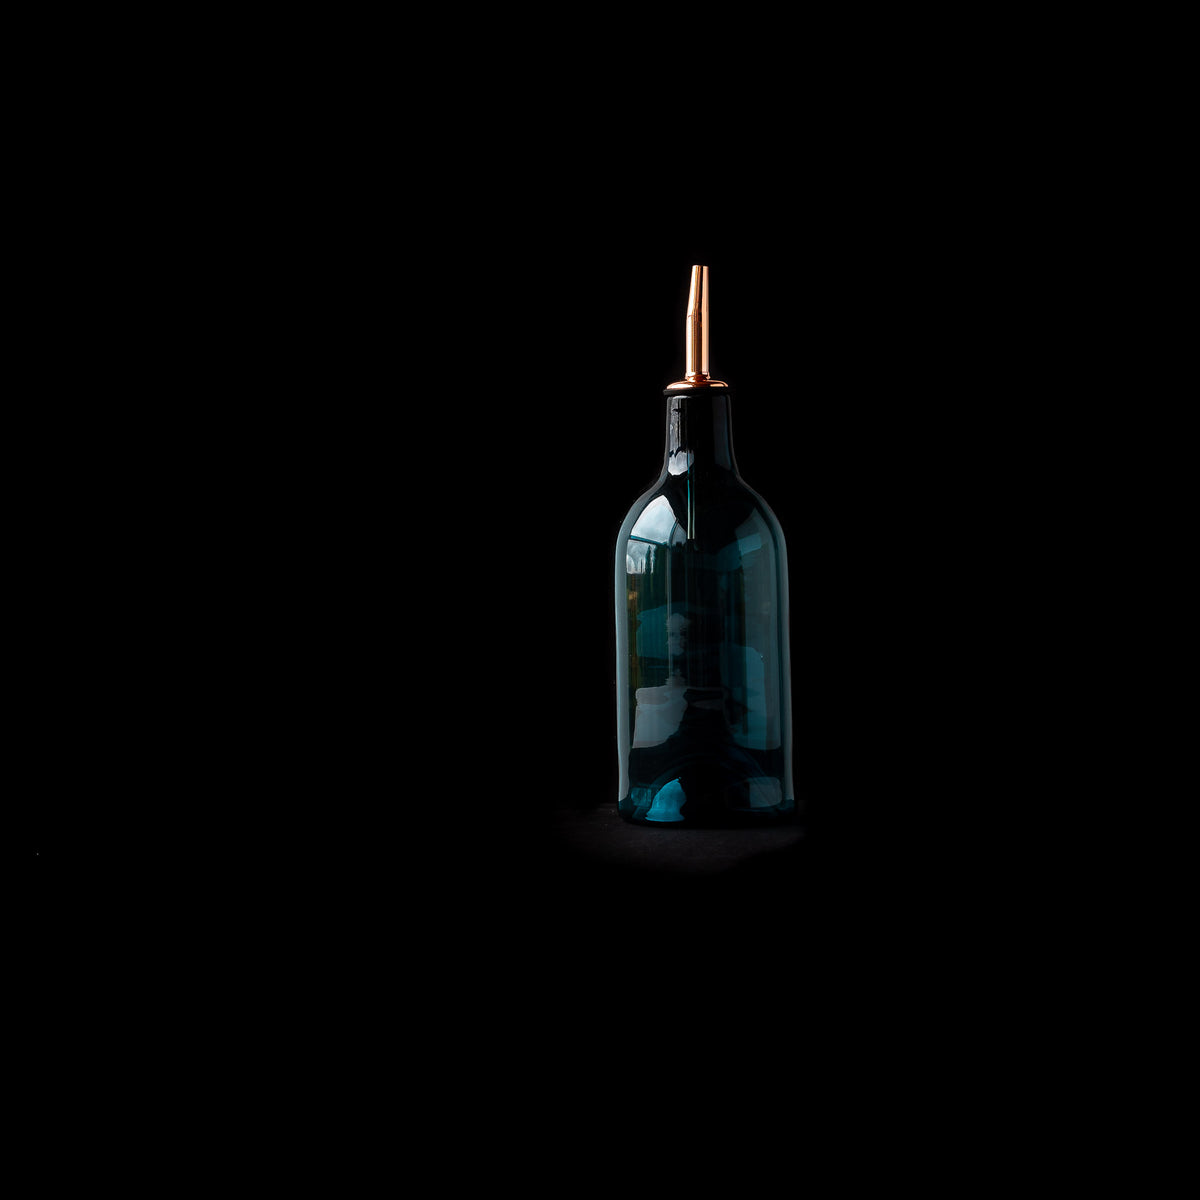 Blue Hand-blown Glass Oil / Vinegar Bottle on Black Background - Sold by Chic & Basta